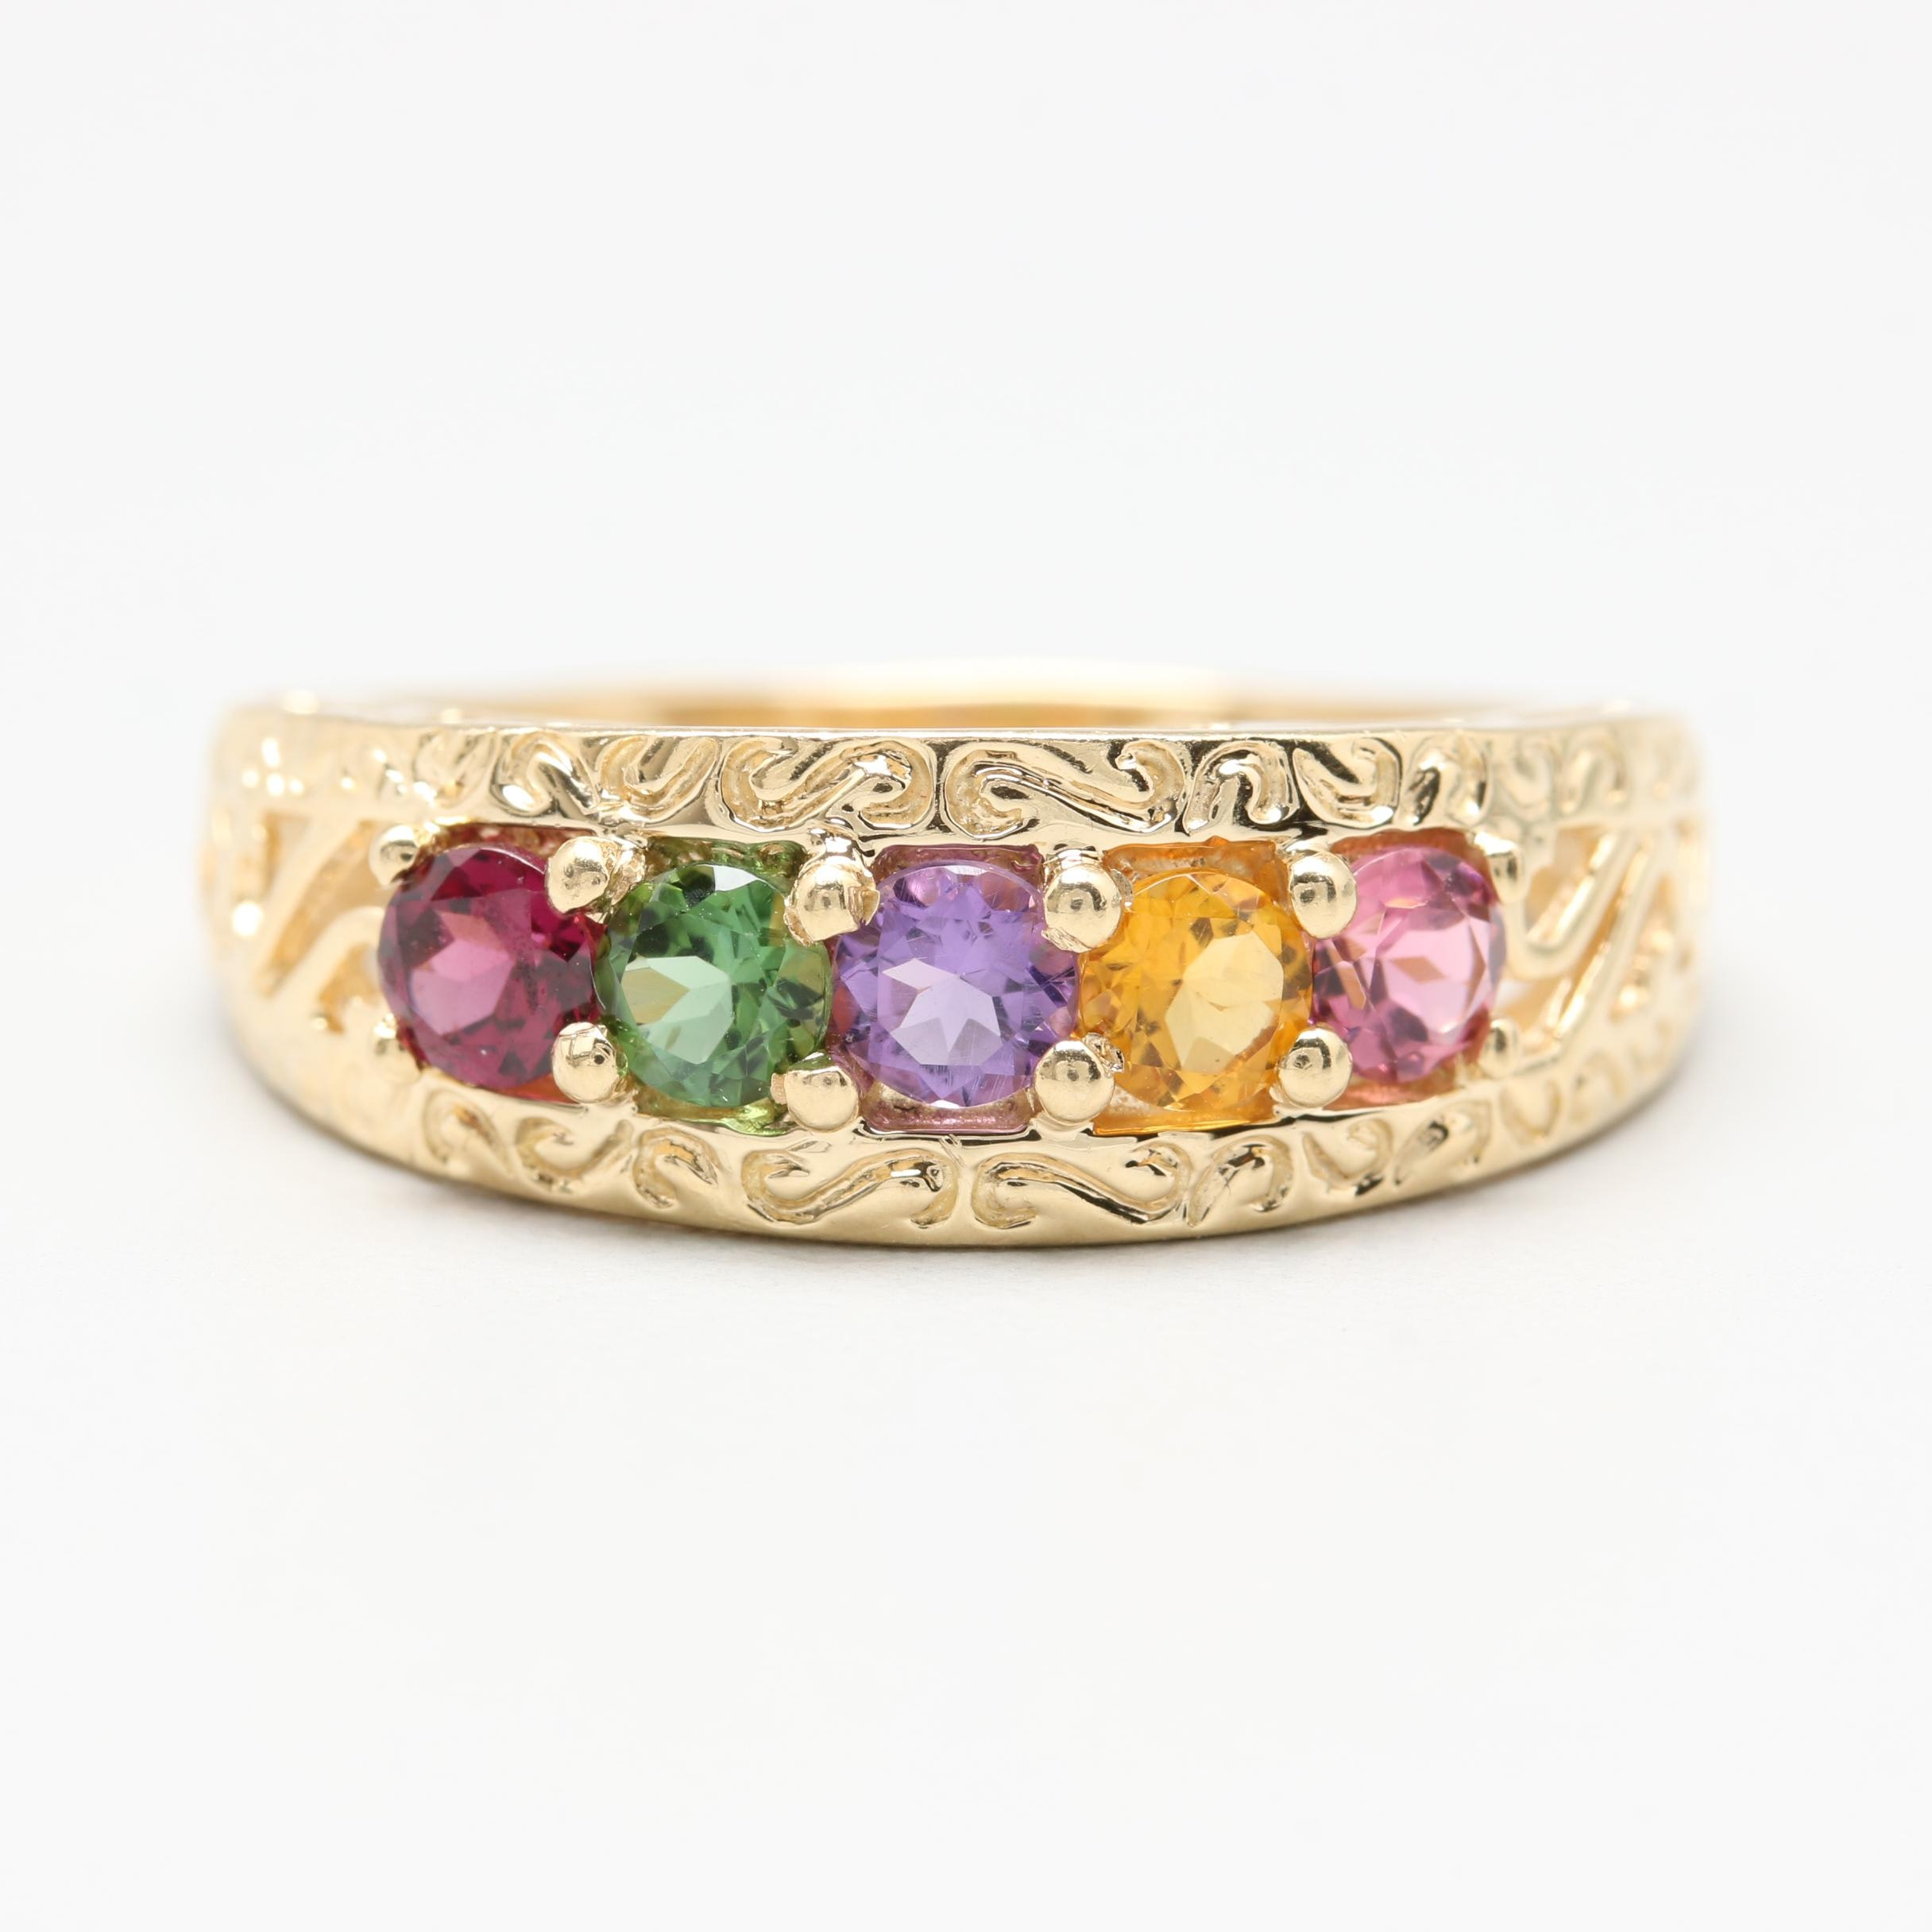 14K Yellow Gold Rhodium Garnet, Diopside, Citrine and Amethyst Ring